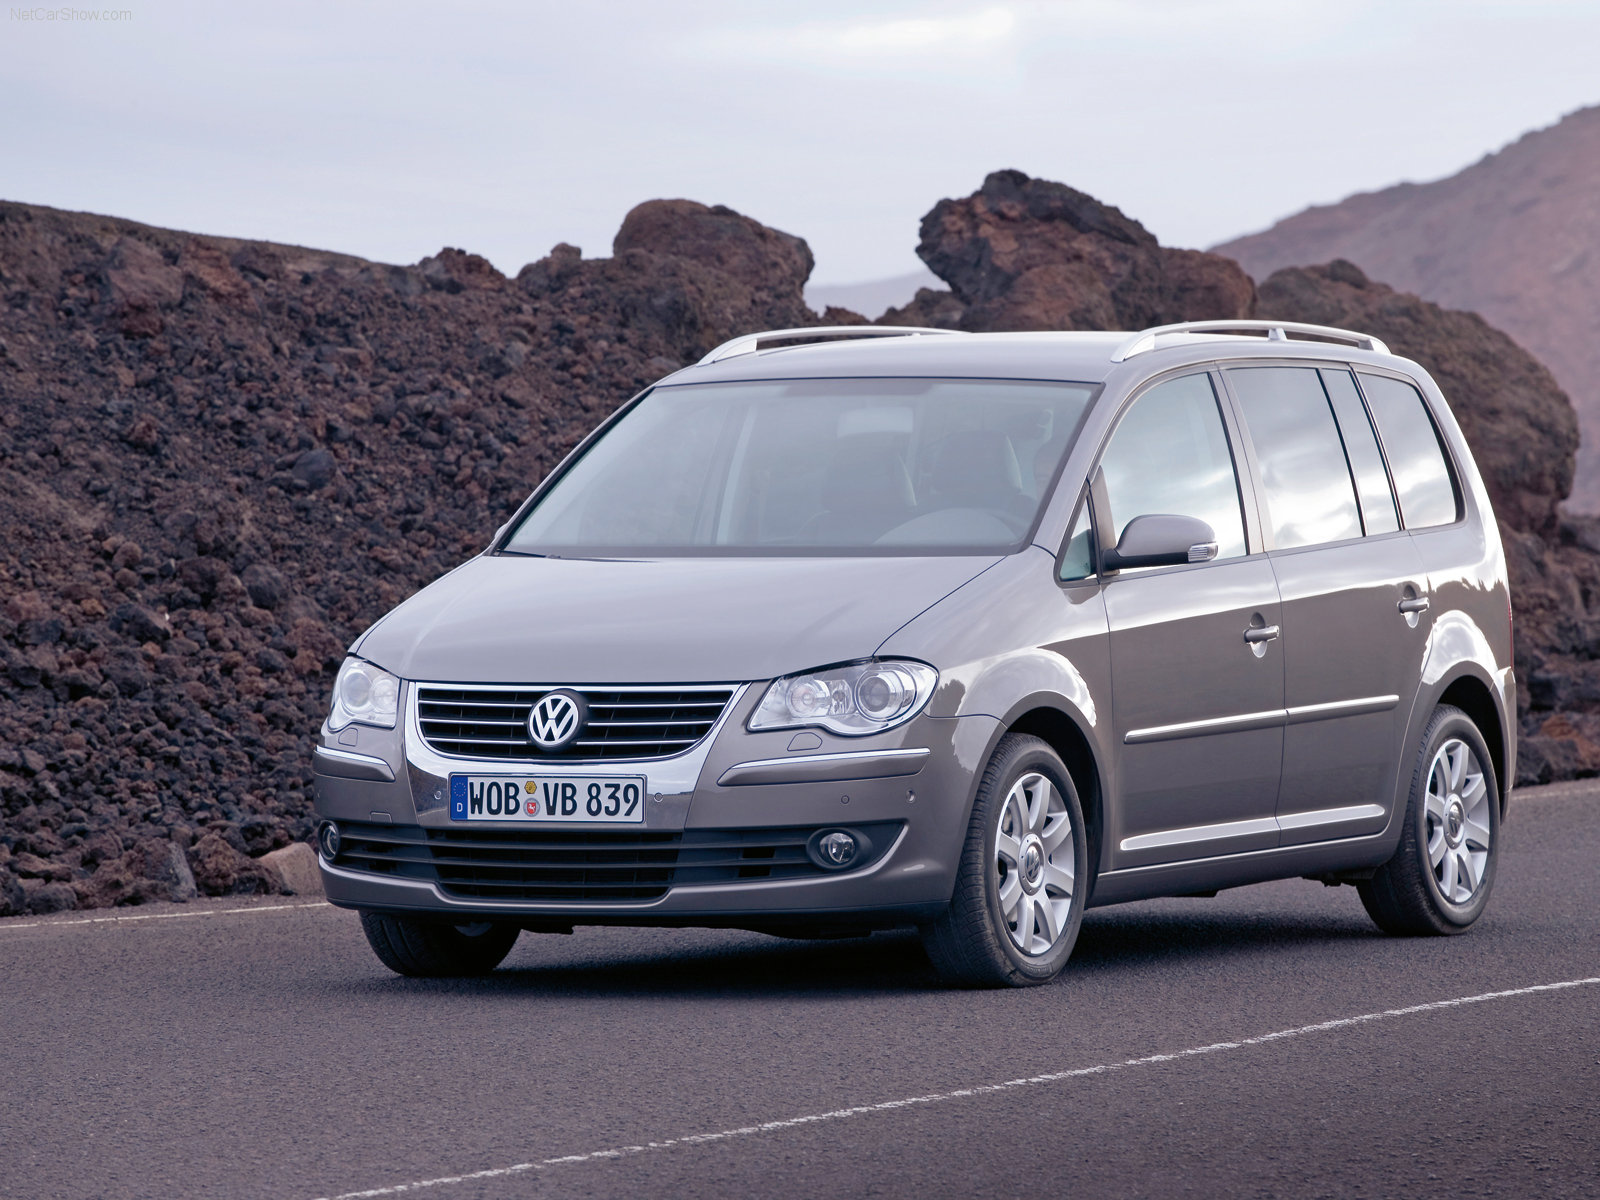 2007 volkswagen touran car photos catalog 2018